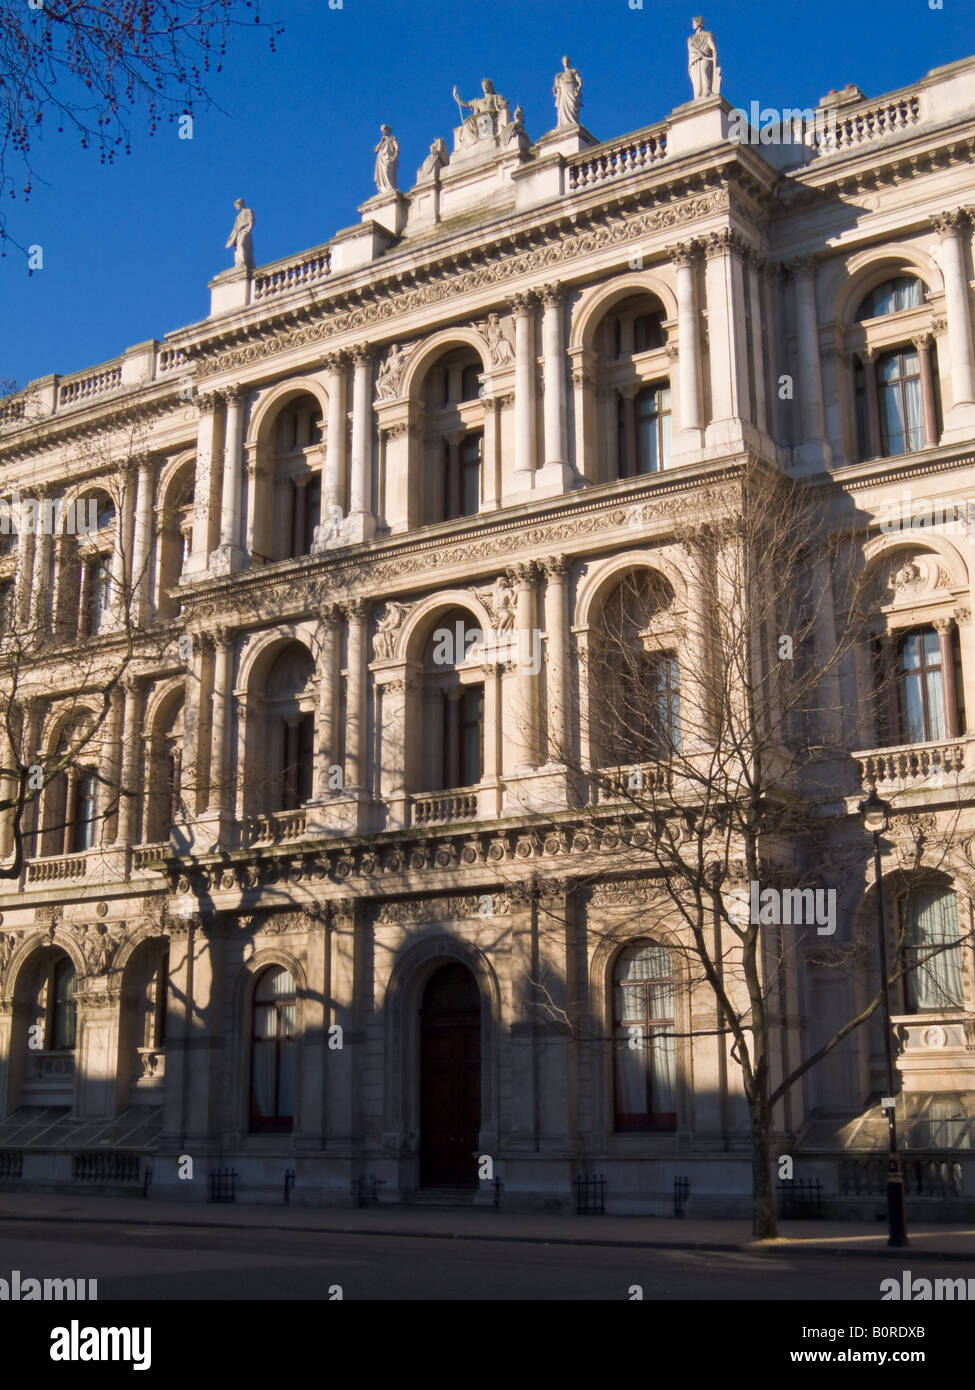 Foreign and commonwealth office whitehall city of - British foreign commonwealth office ...